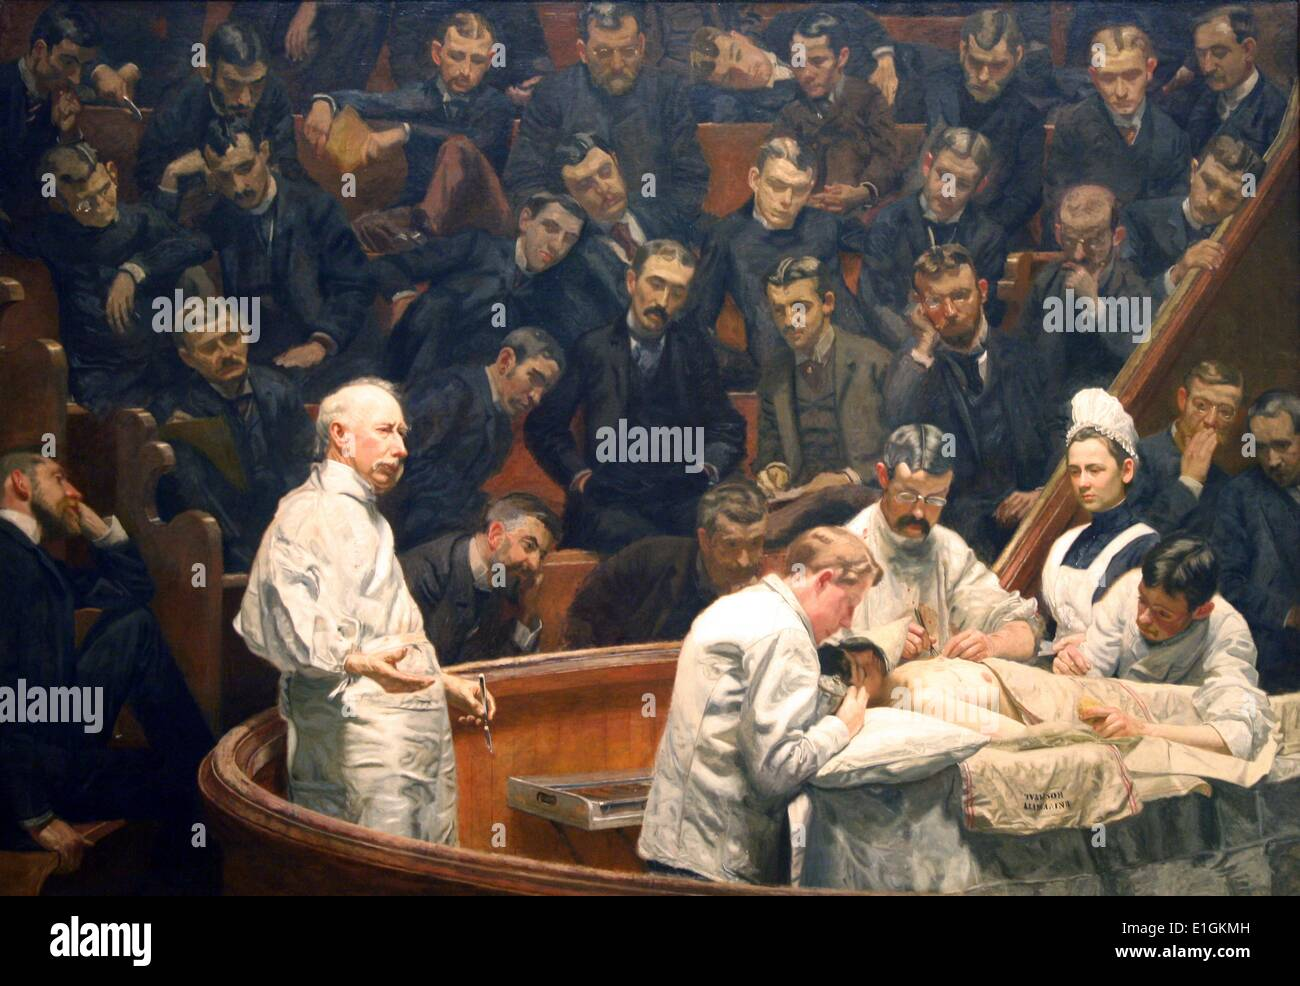 The Agnew Clinic by Thomas Eakins - Stock Image